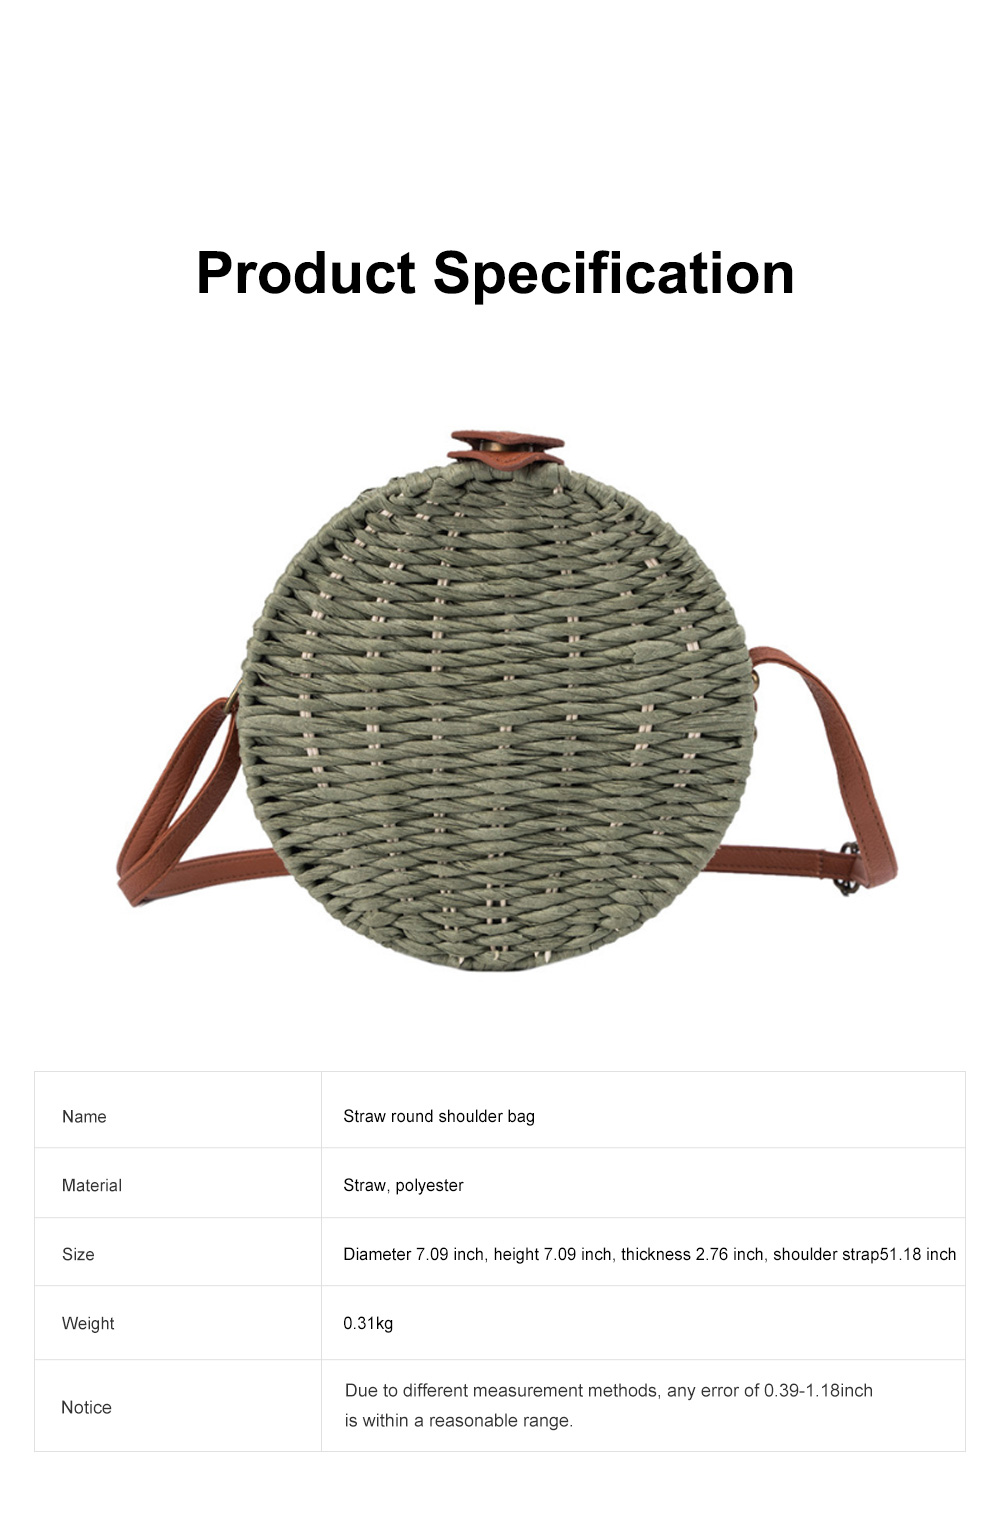 Simple Fancy Straw Shoulder Round Bag for Ladies, Beach Vacation Holiday National Style Women Shoulder Bag 6